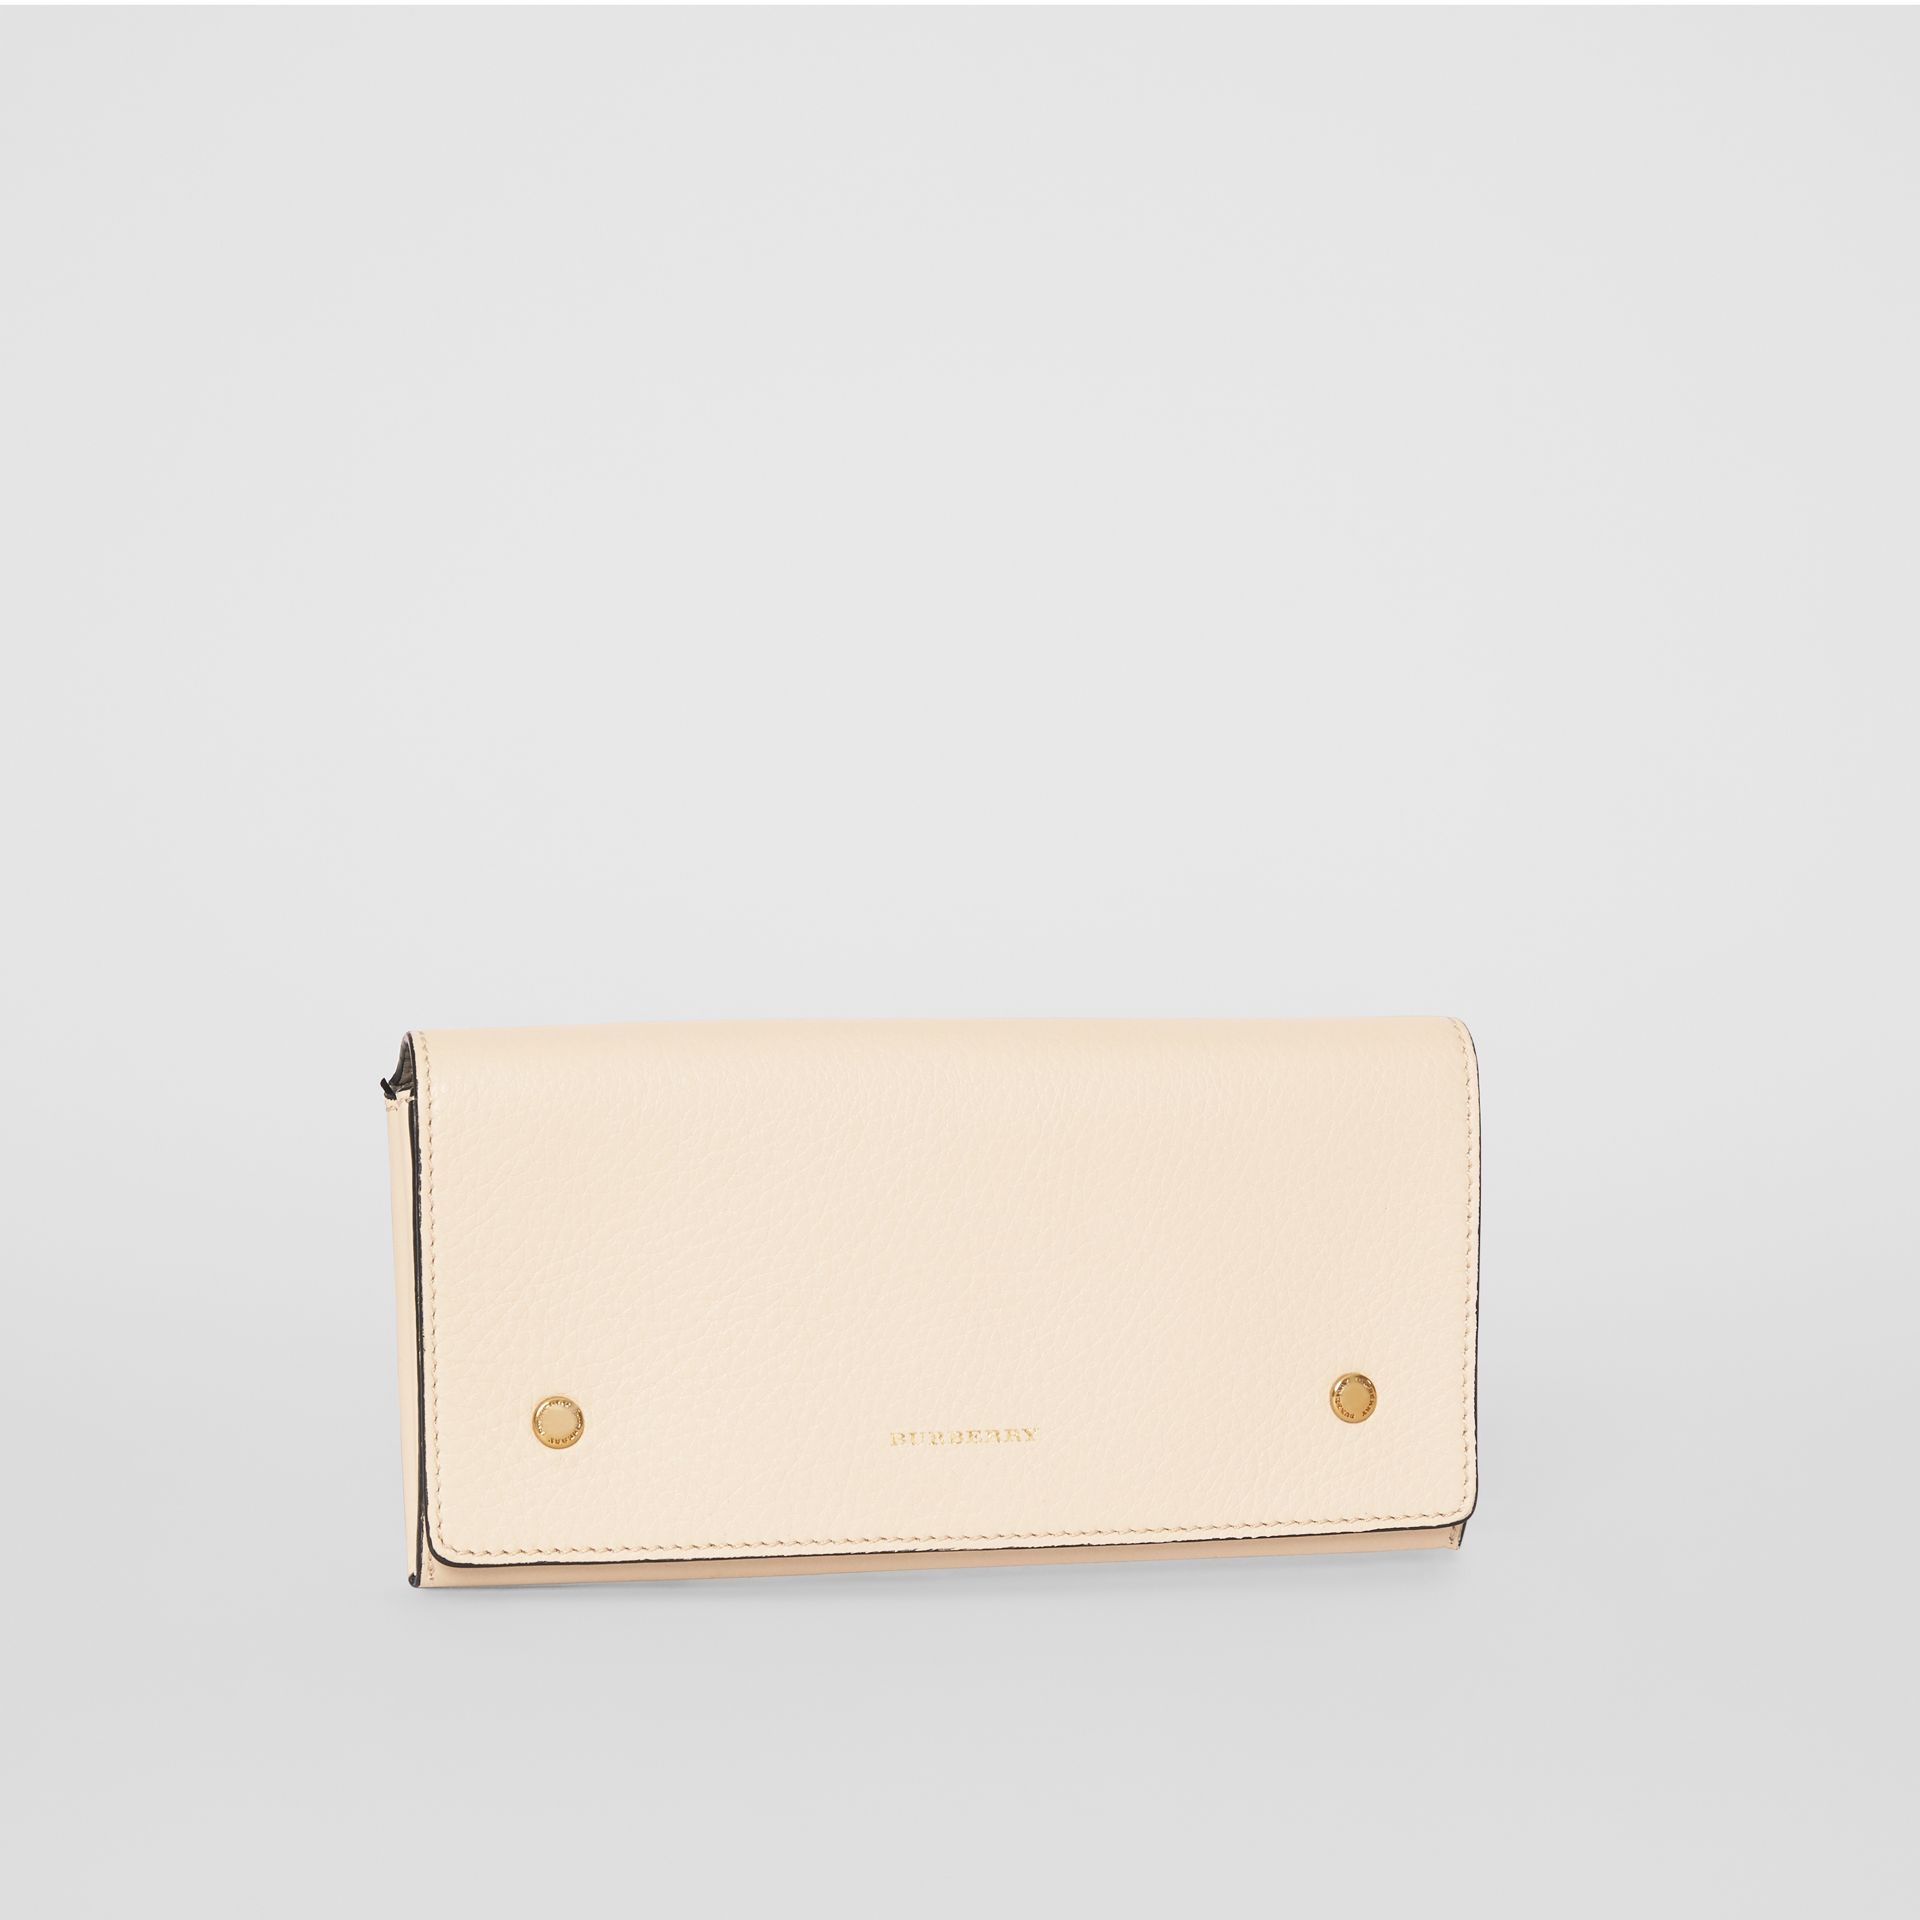 Two-tone Leather Continental Wallet in Limestone - Women | Burberry United States - gallery image 4